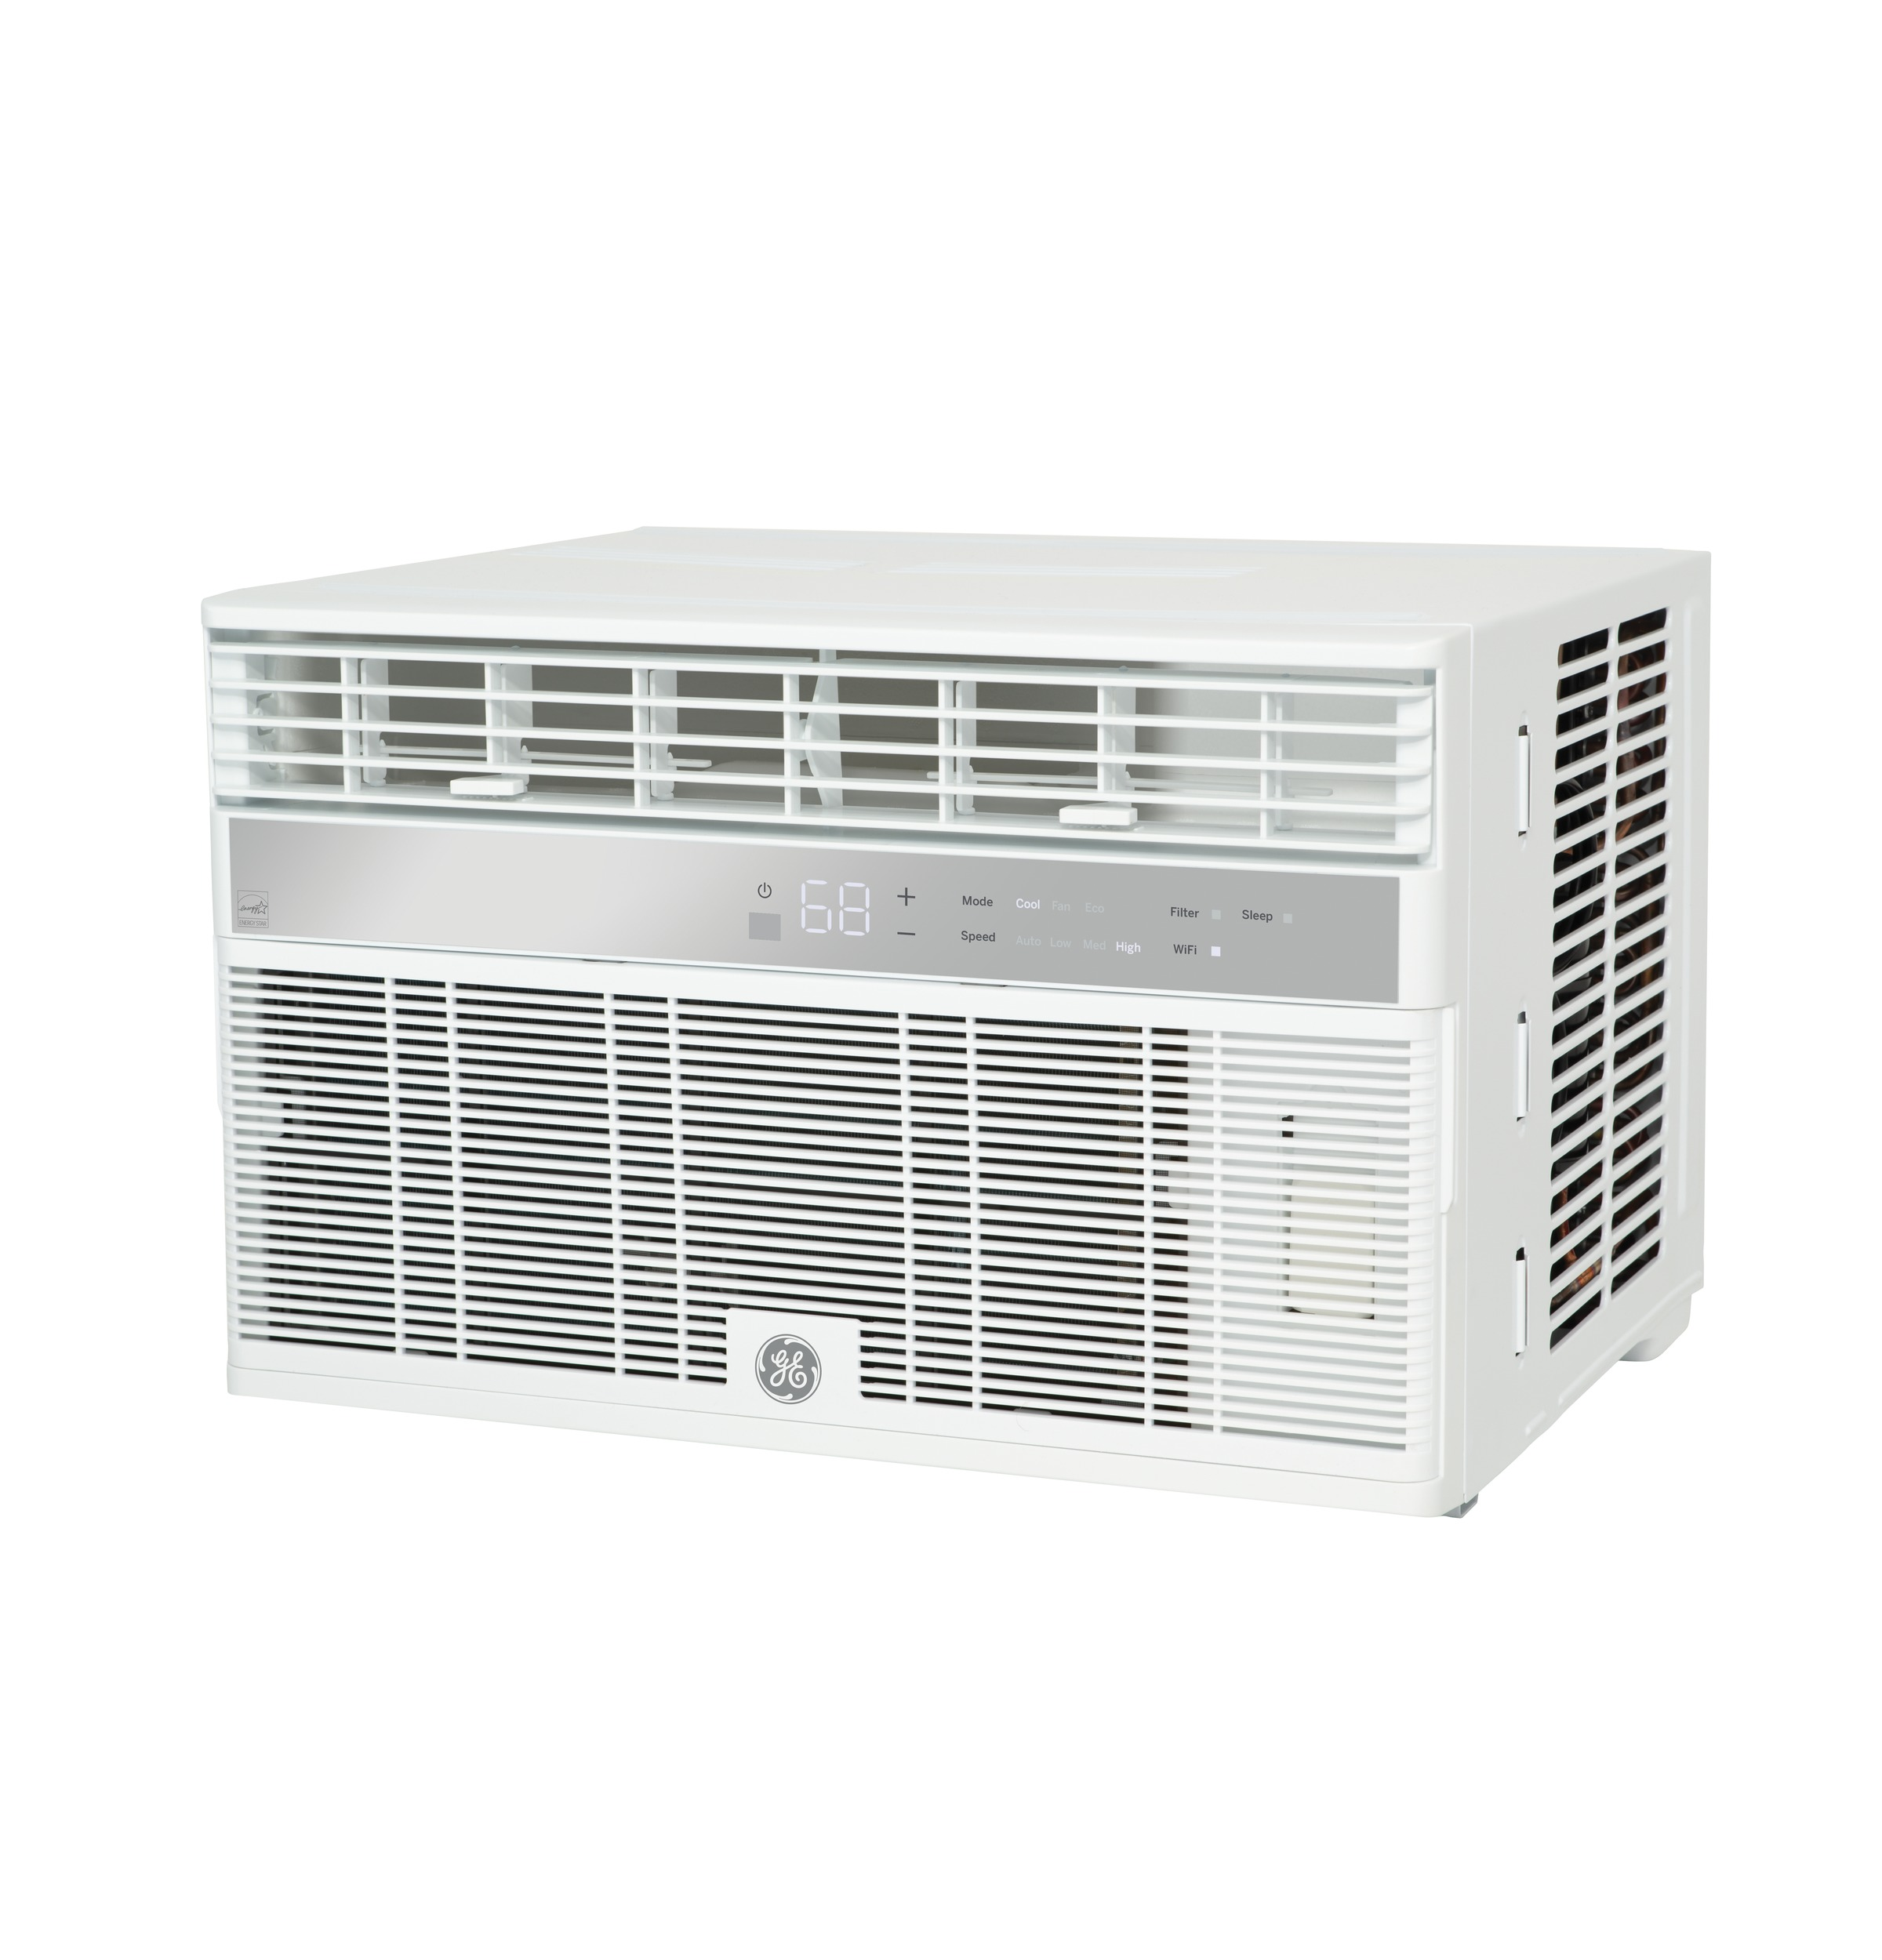 Model: AHY14LZ | GE GE® 115 Volt Smart Room Air Conditioner